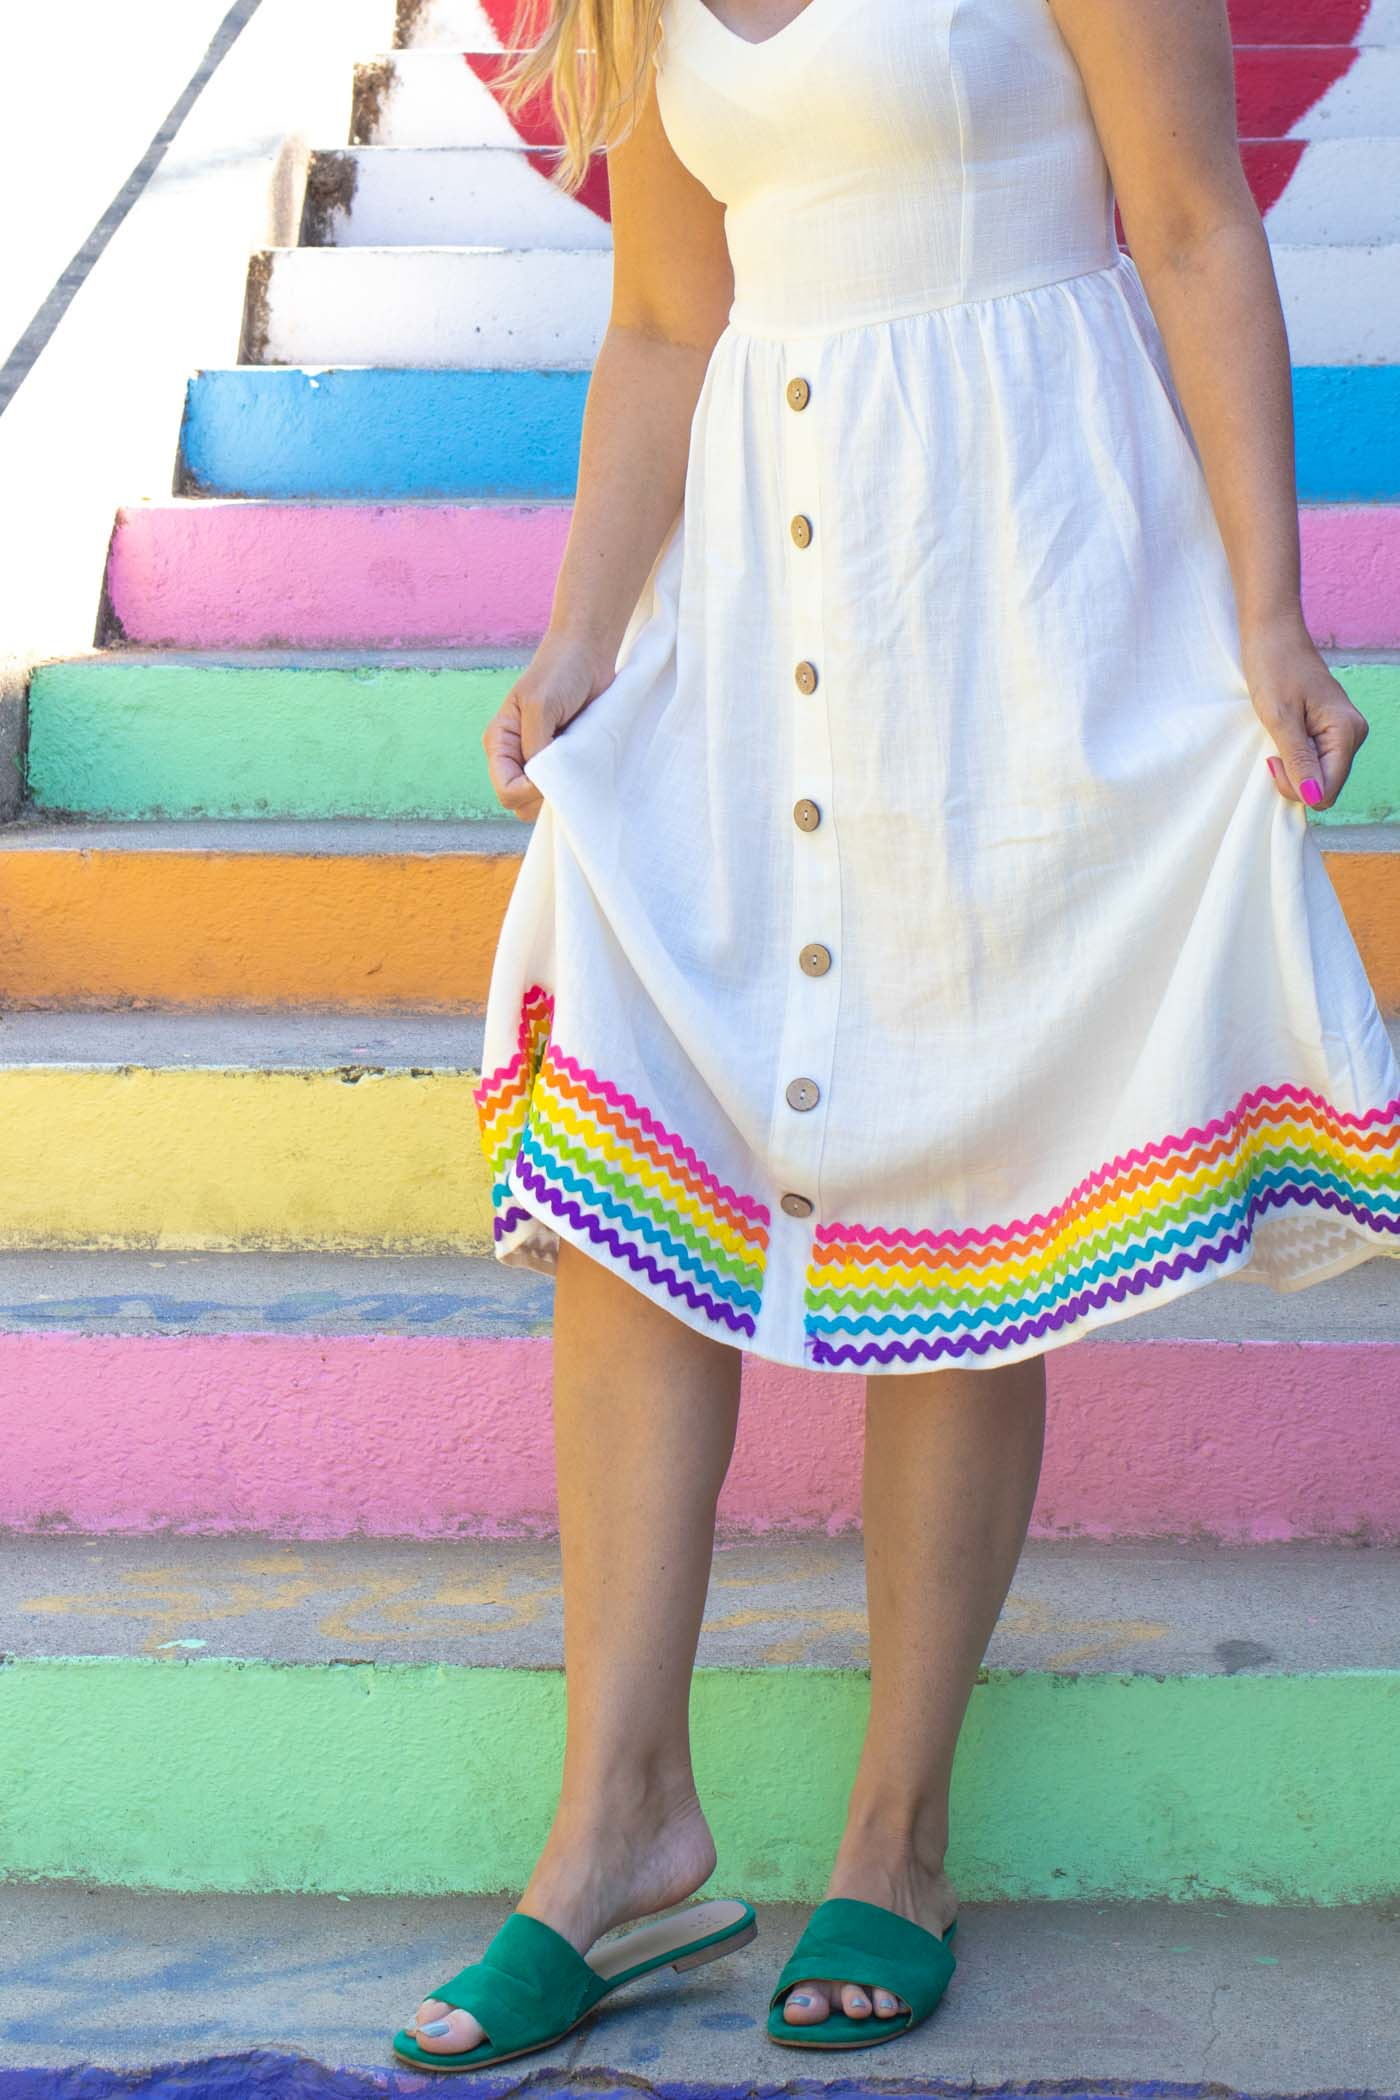 DIY Rainbow RickRack Dress // How to Sew RickRack // Learn the easy way to sew rick rack with this sewing tutorial to update a dress for summer with cute rainbow trim! #sewing #womensfashion #rickrack #howtosew #rainbow #fabricprojects #diyideas